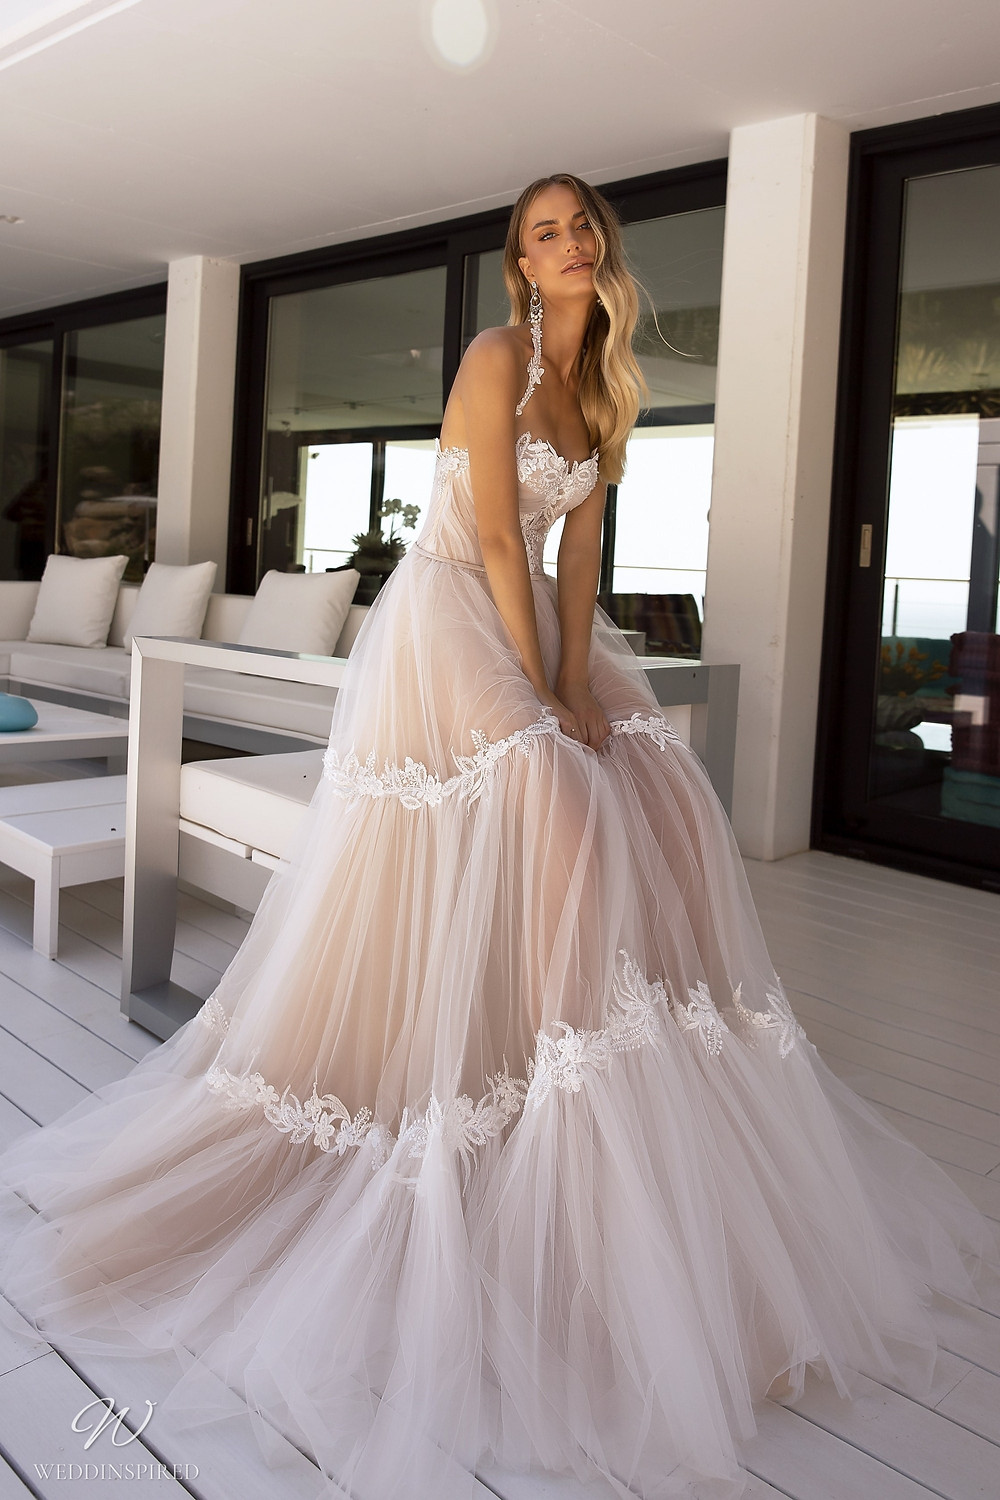 A Tina Valerdi strapless blush tulle A-line wedding dress with a sweetheart neckline